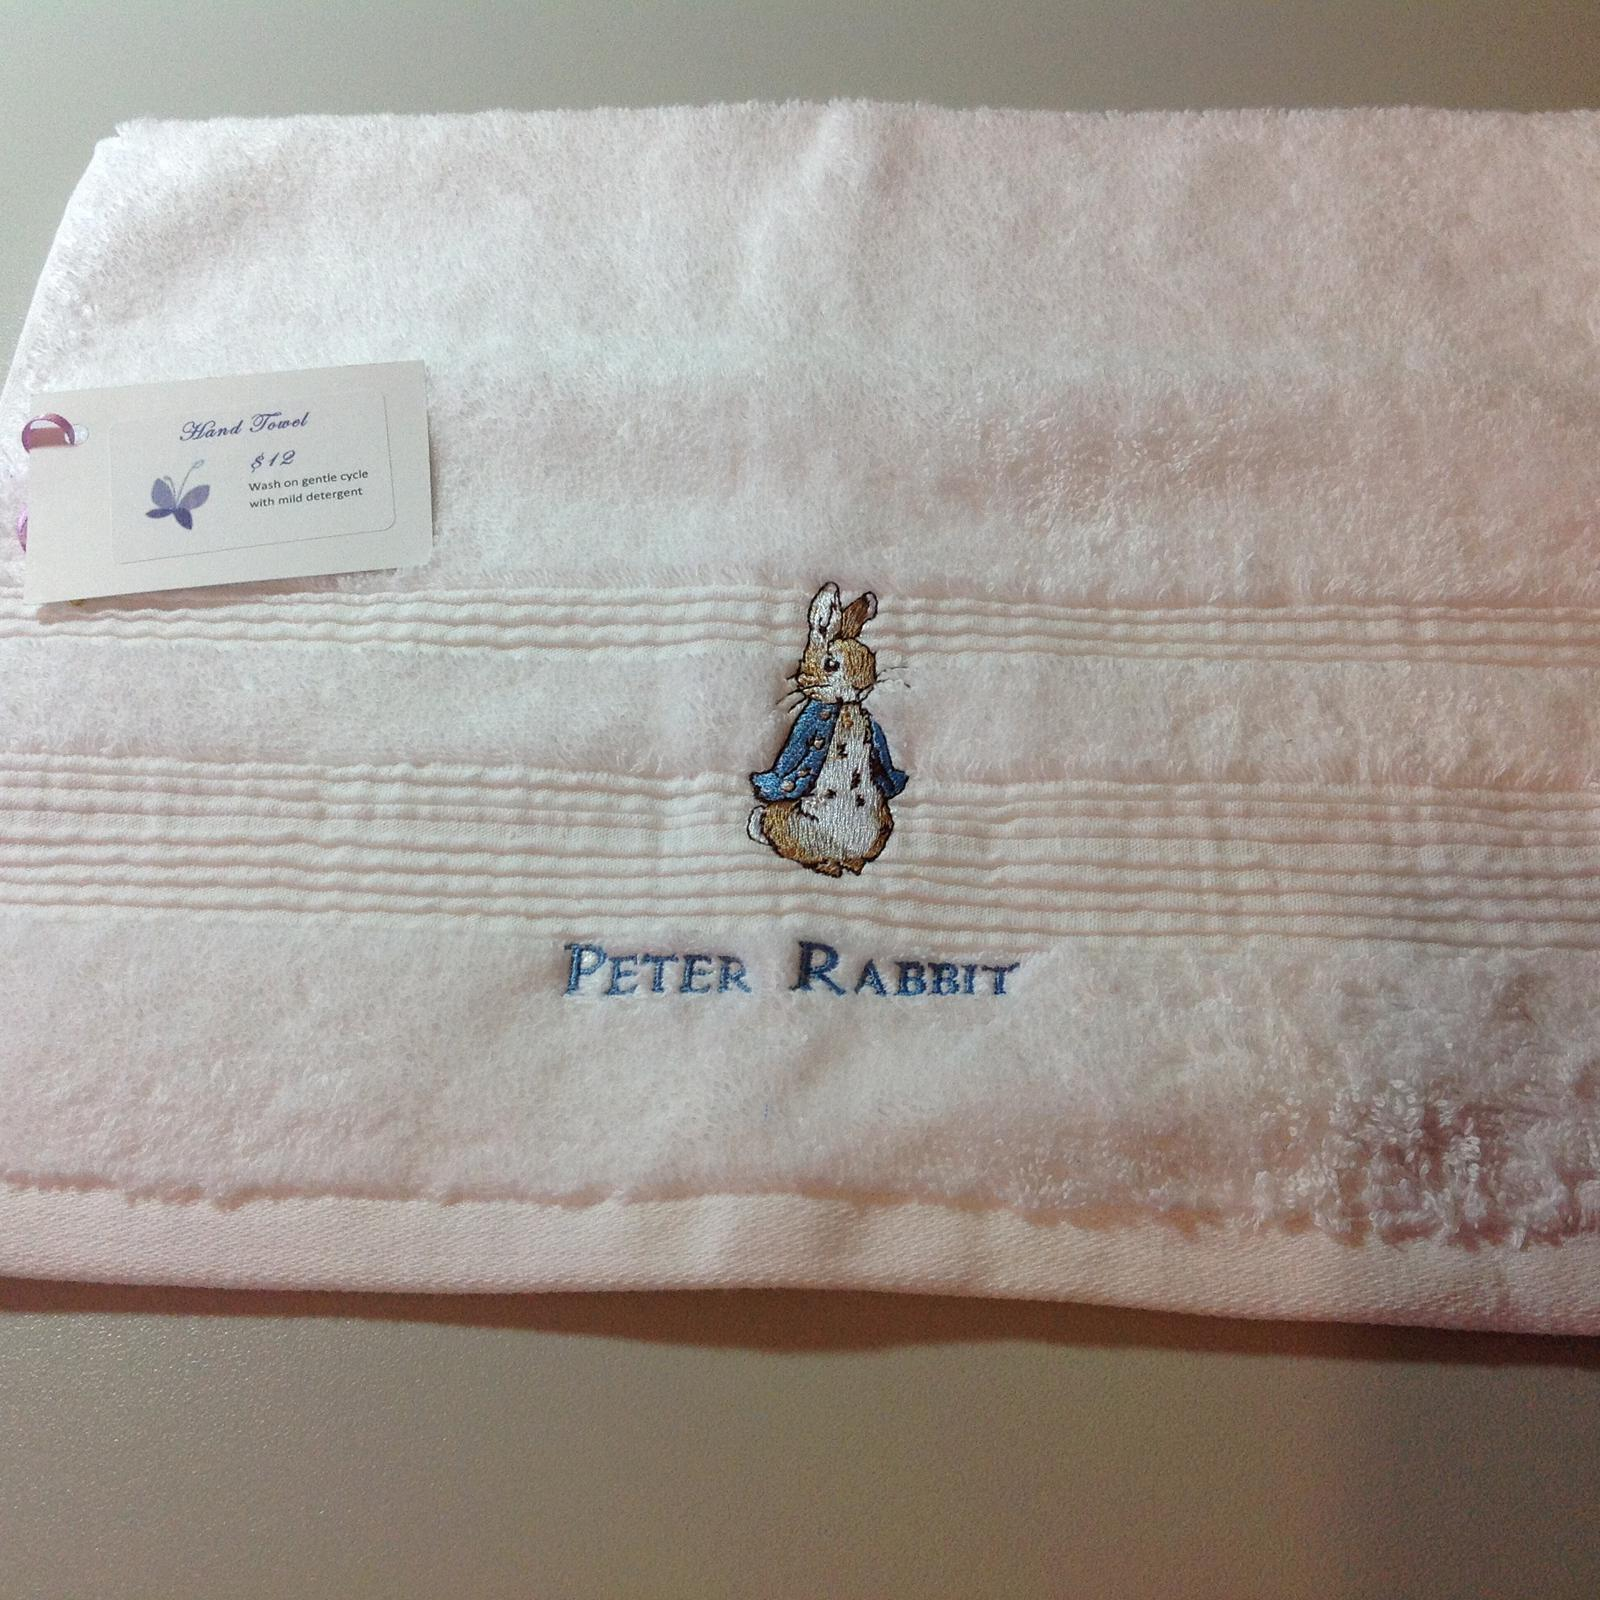 Peter rabbit hand towel